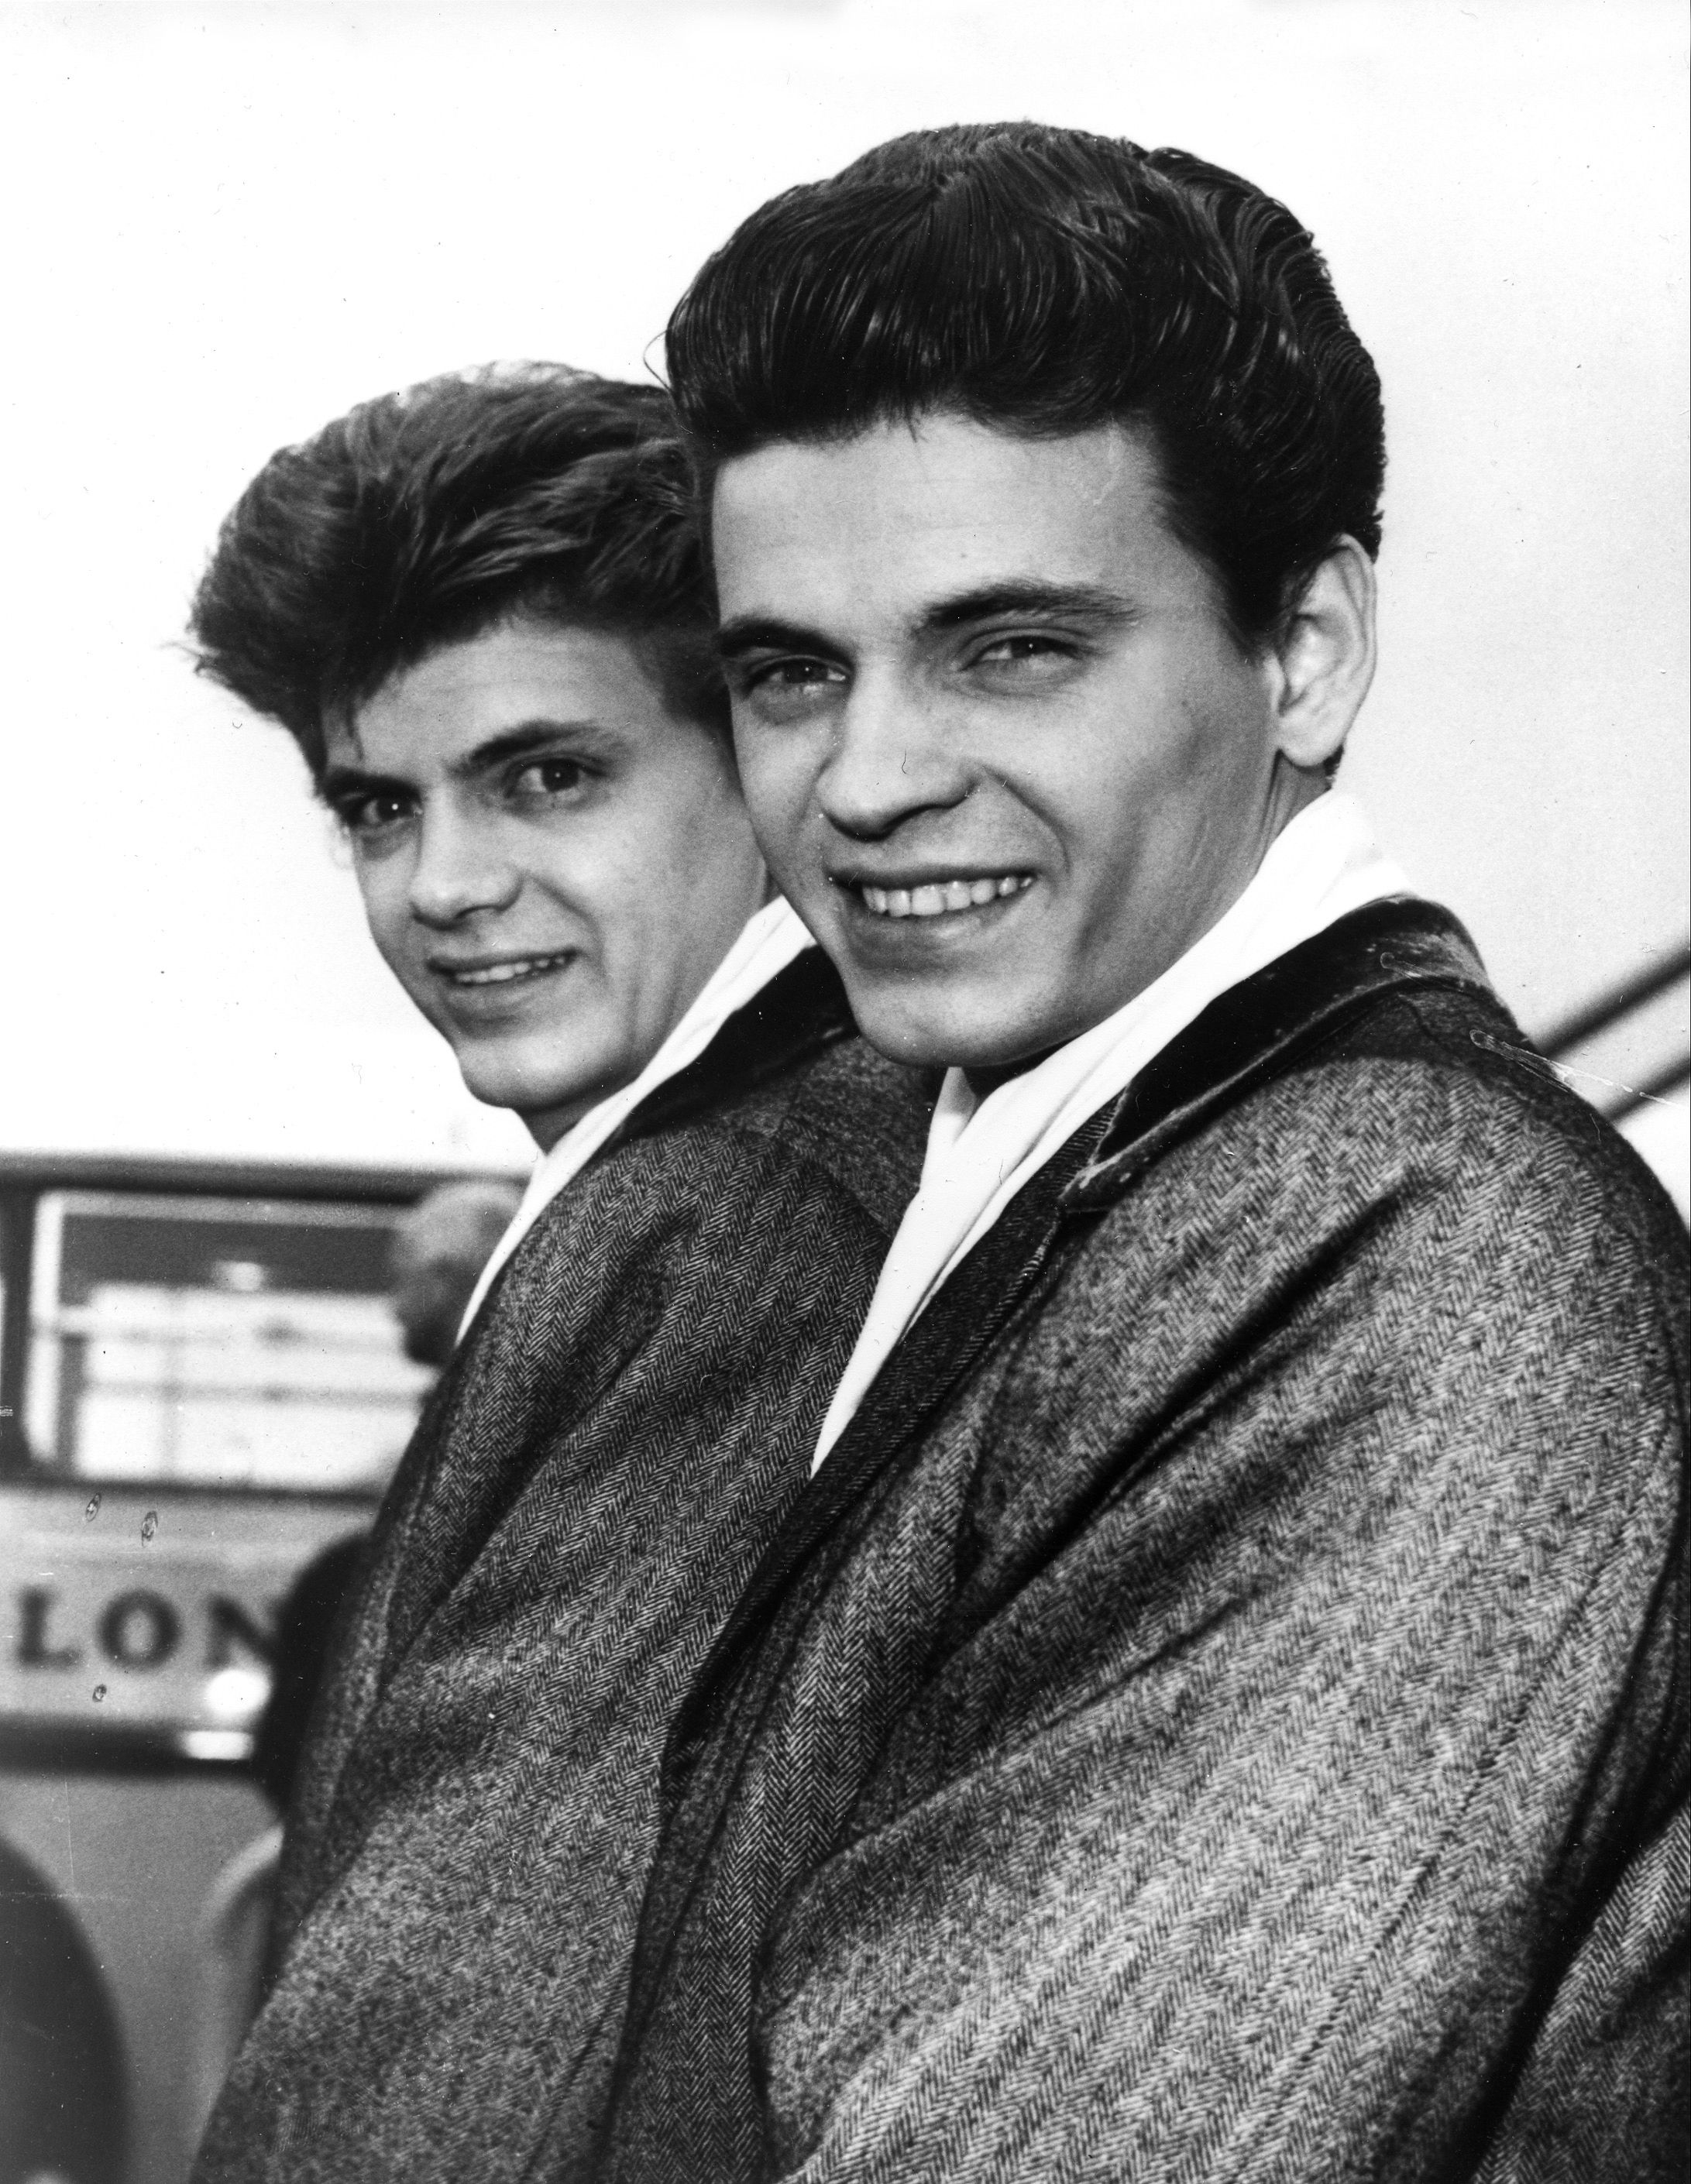 In this April 1, 1960 file photo, Phil, left, and Don of the Everly Brothers arrive at London Airport from New York to begin